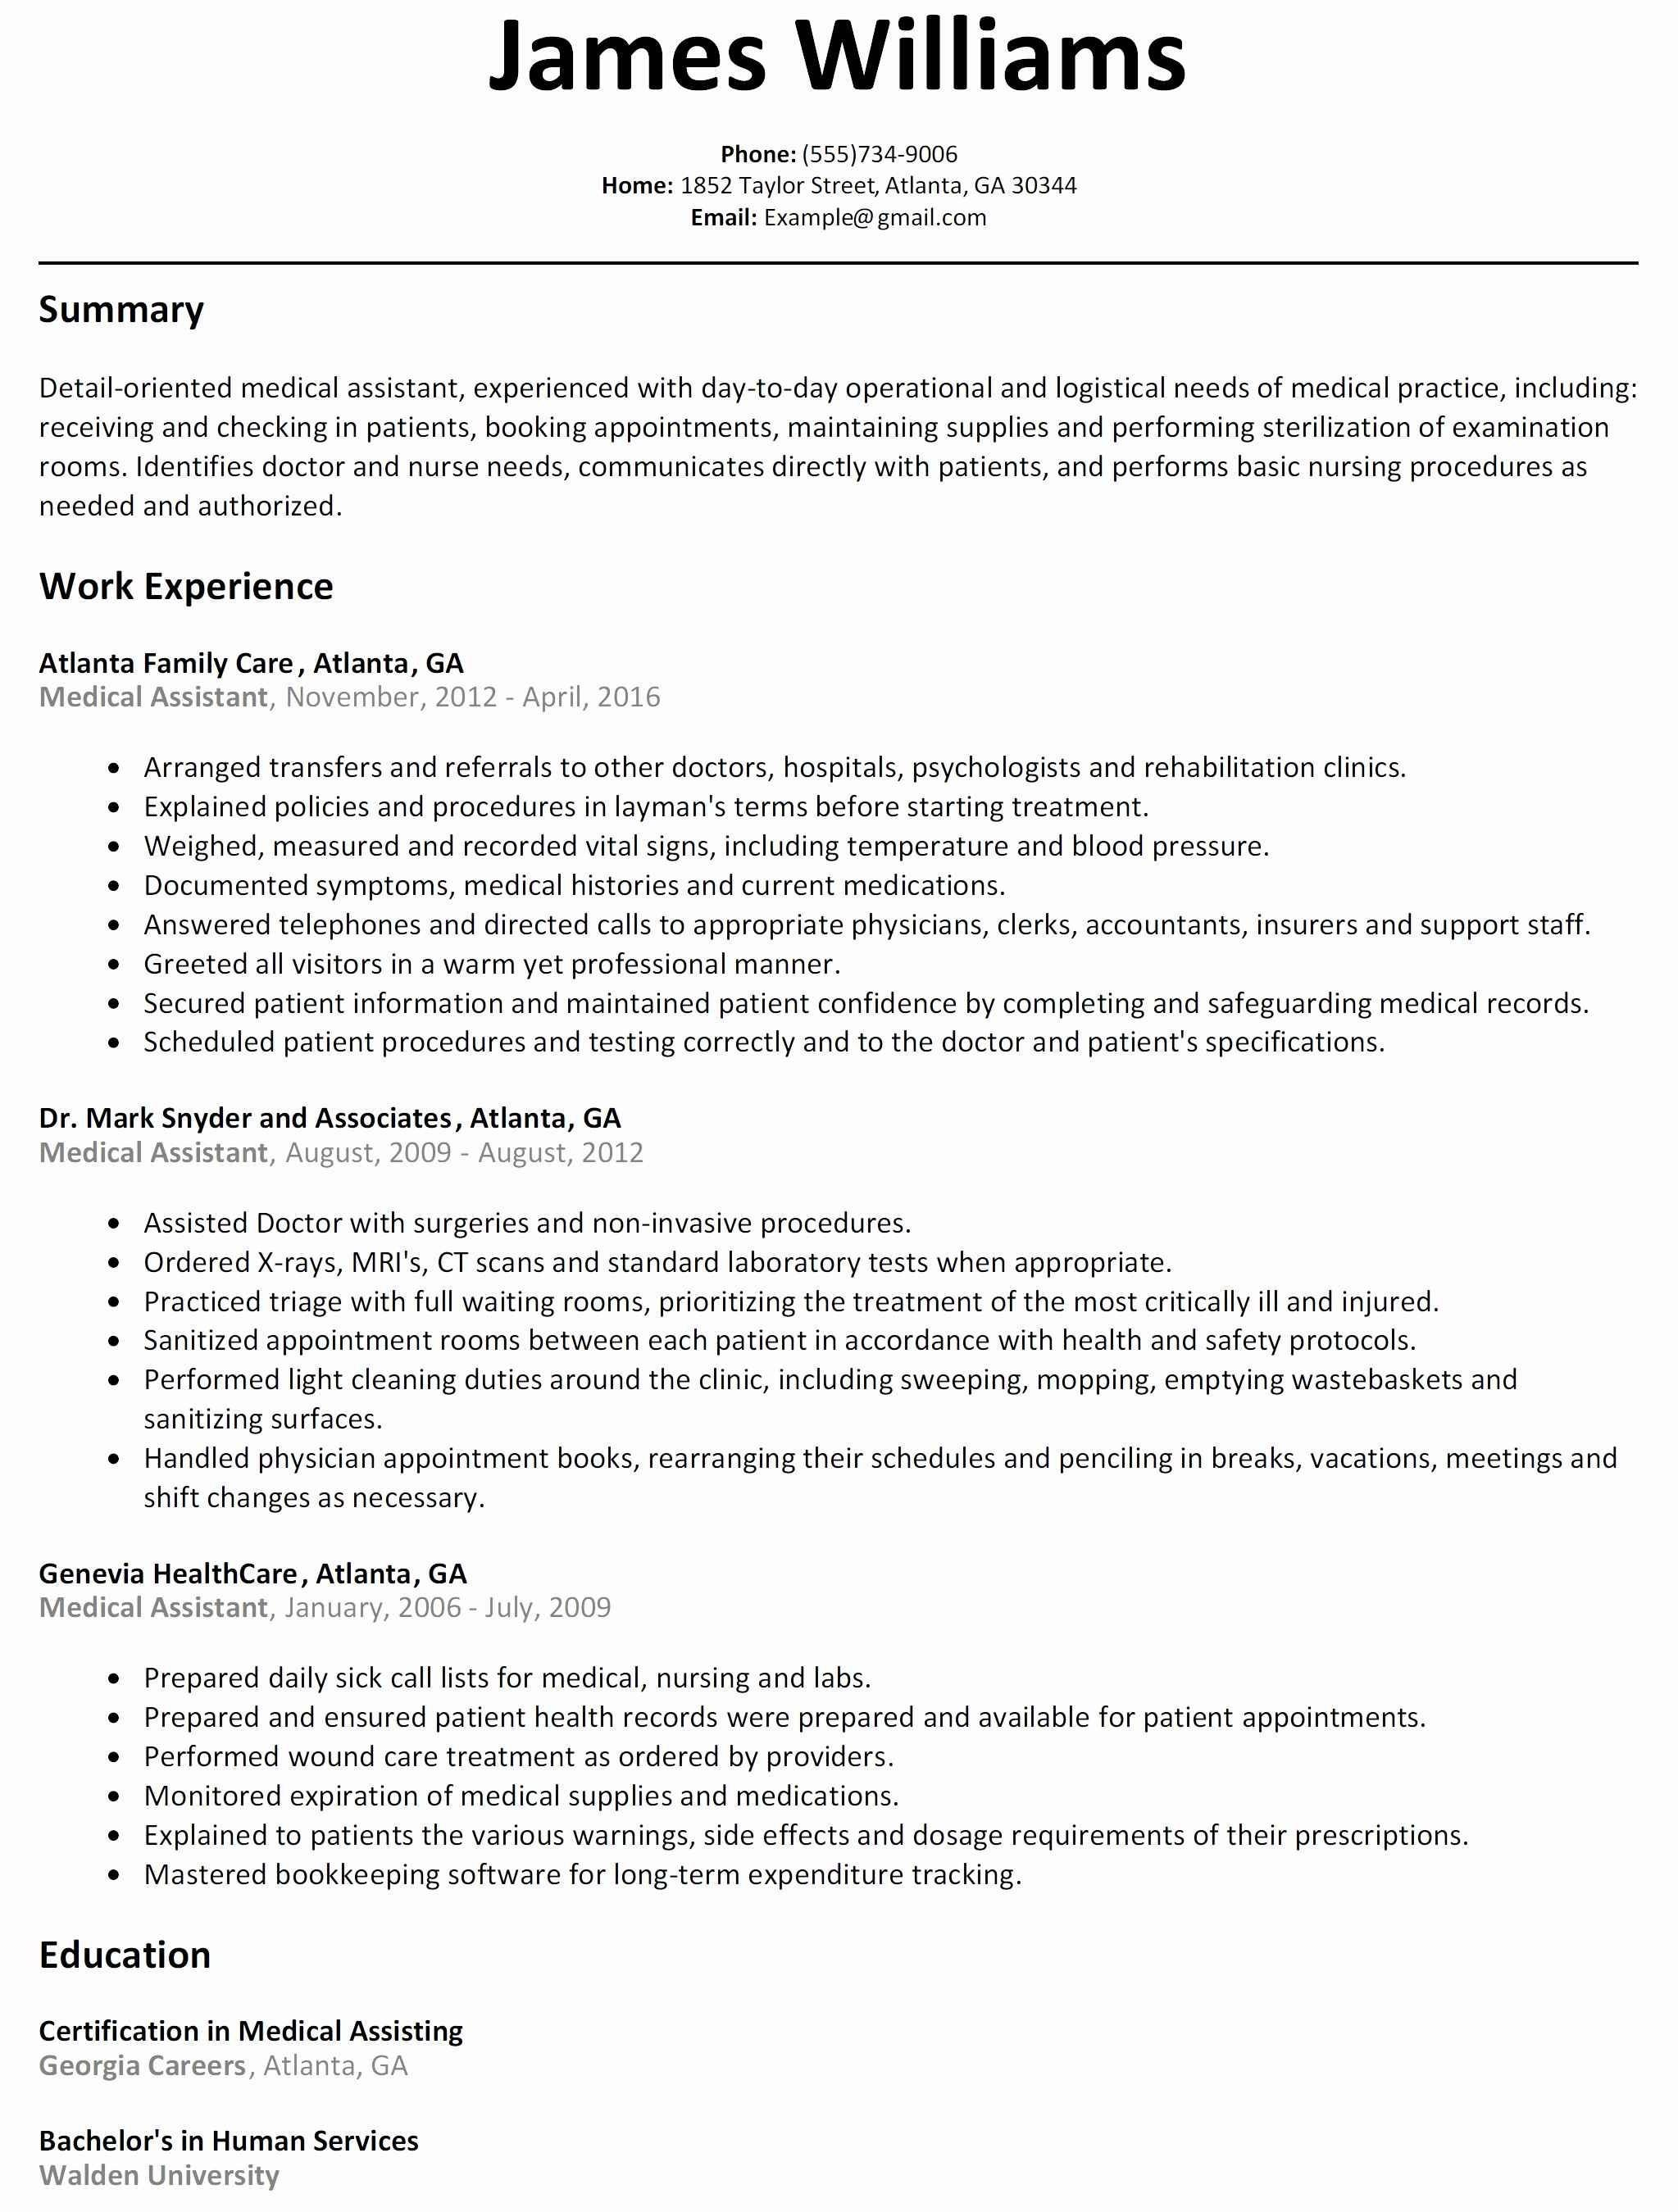 56 Nice Best Resume Format Forbes with Pictures